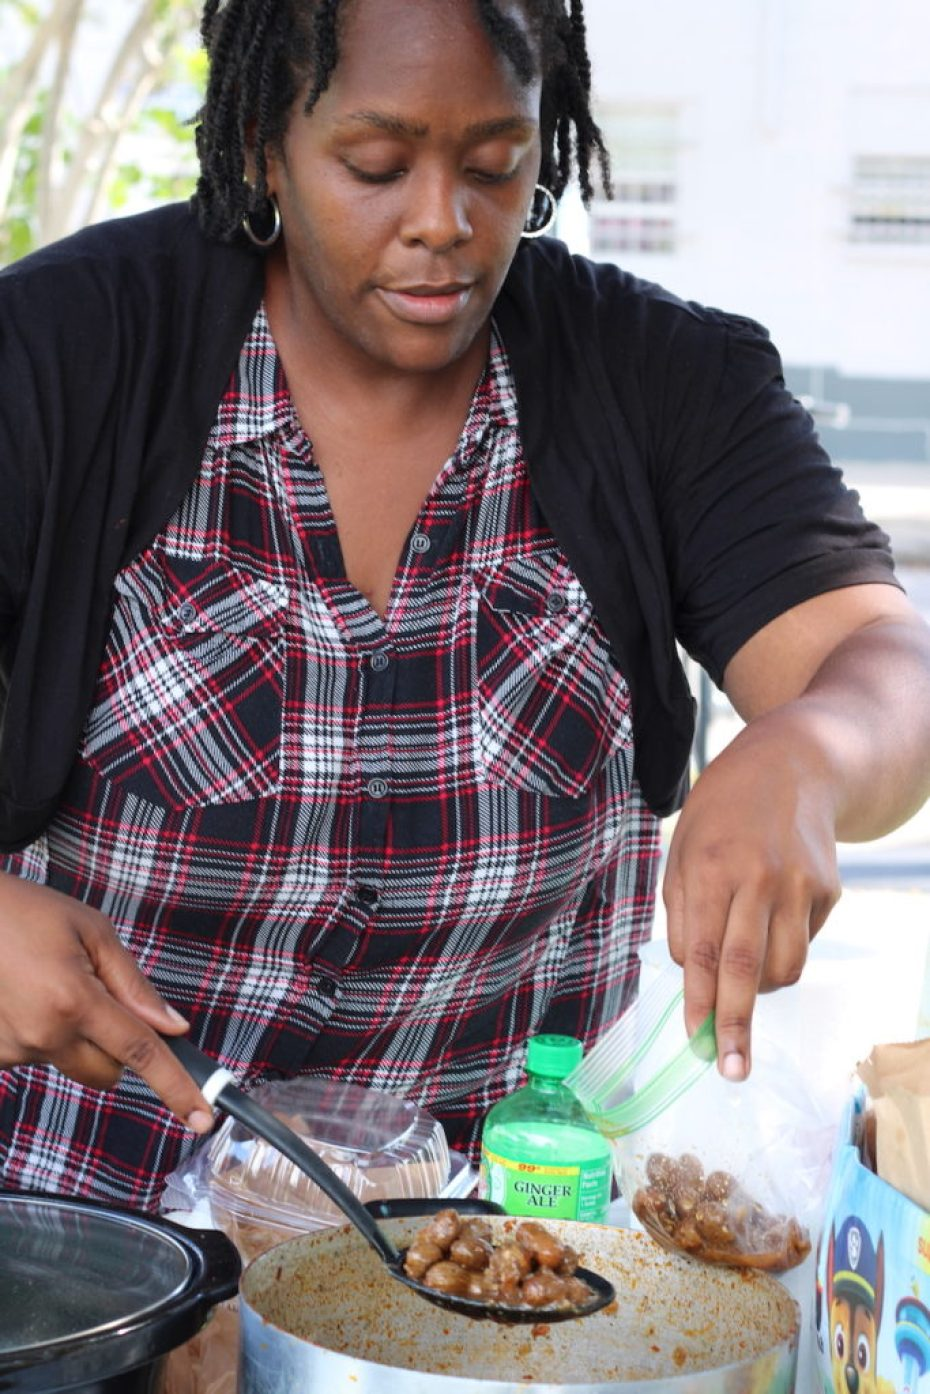 A photo of a woman in a plaid shirt and black sweater serving up a spoonful of boiled peanuts from a pot.